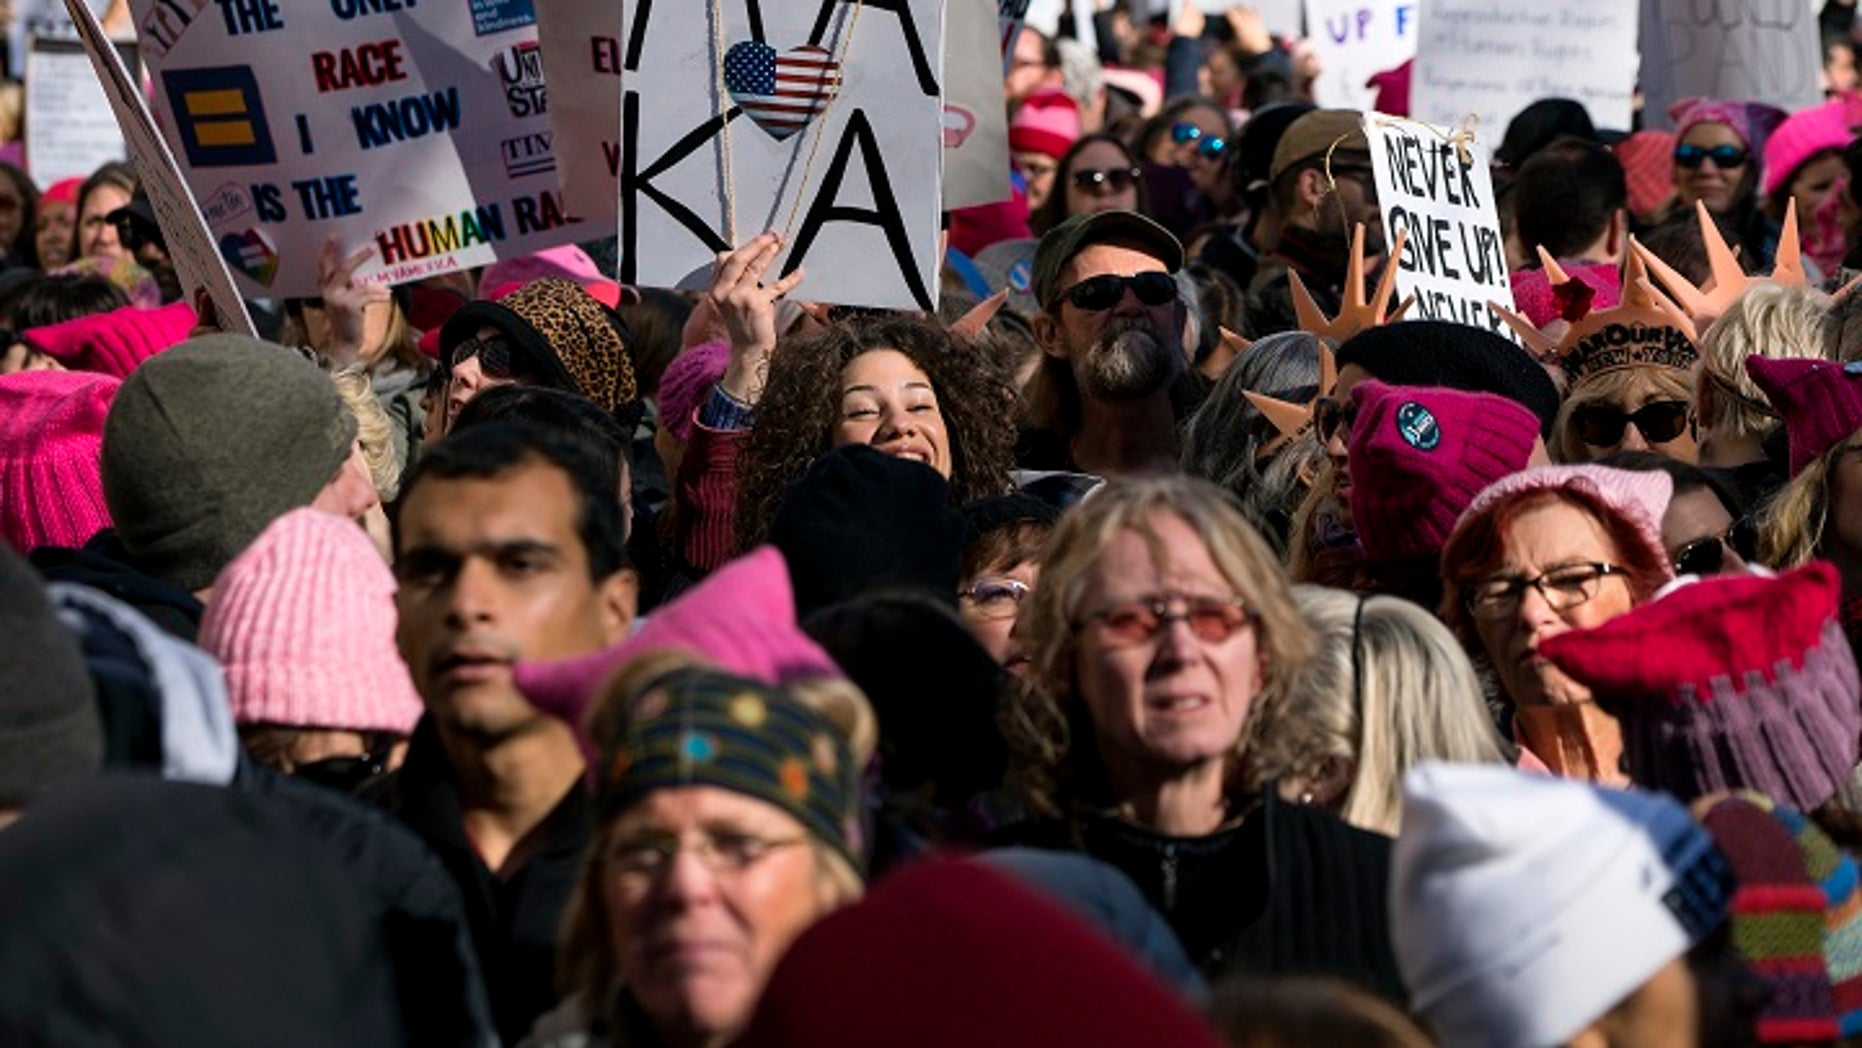 People assembling in New York for the 2018 Women's March on Saturday.